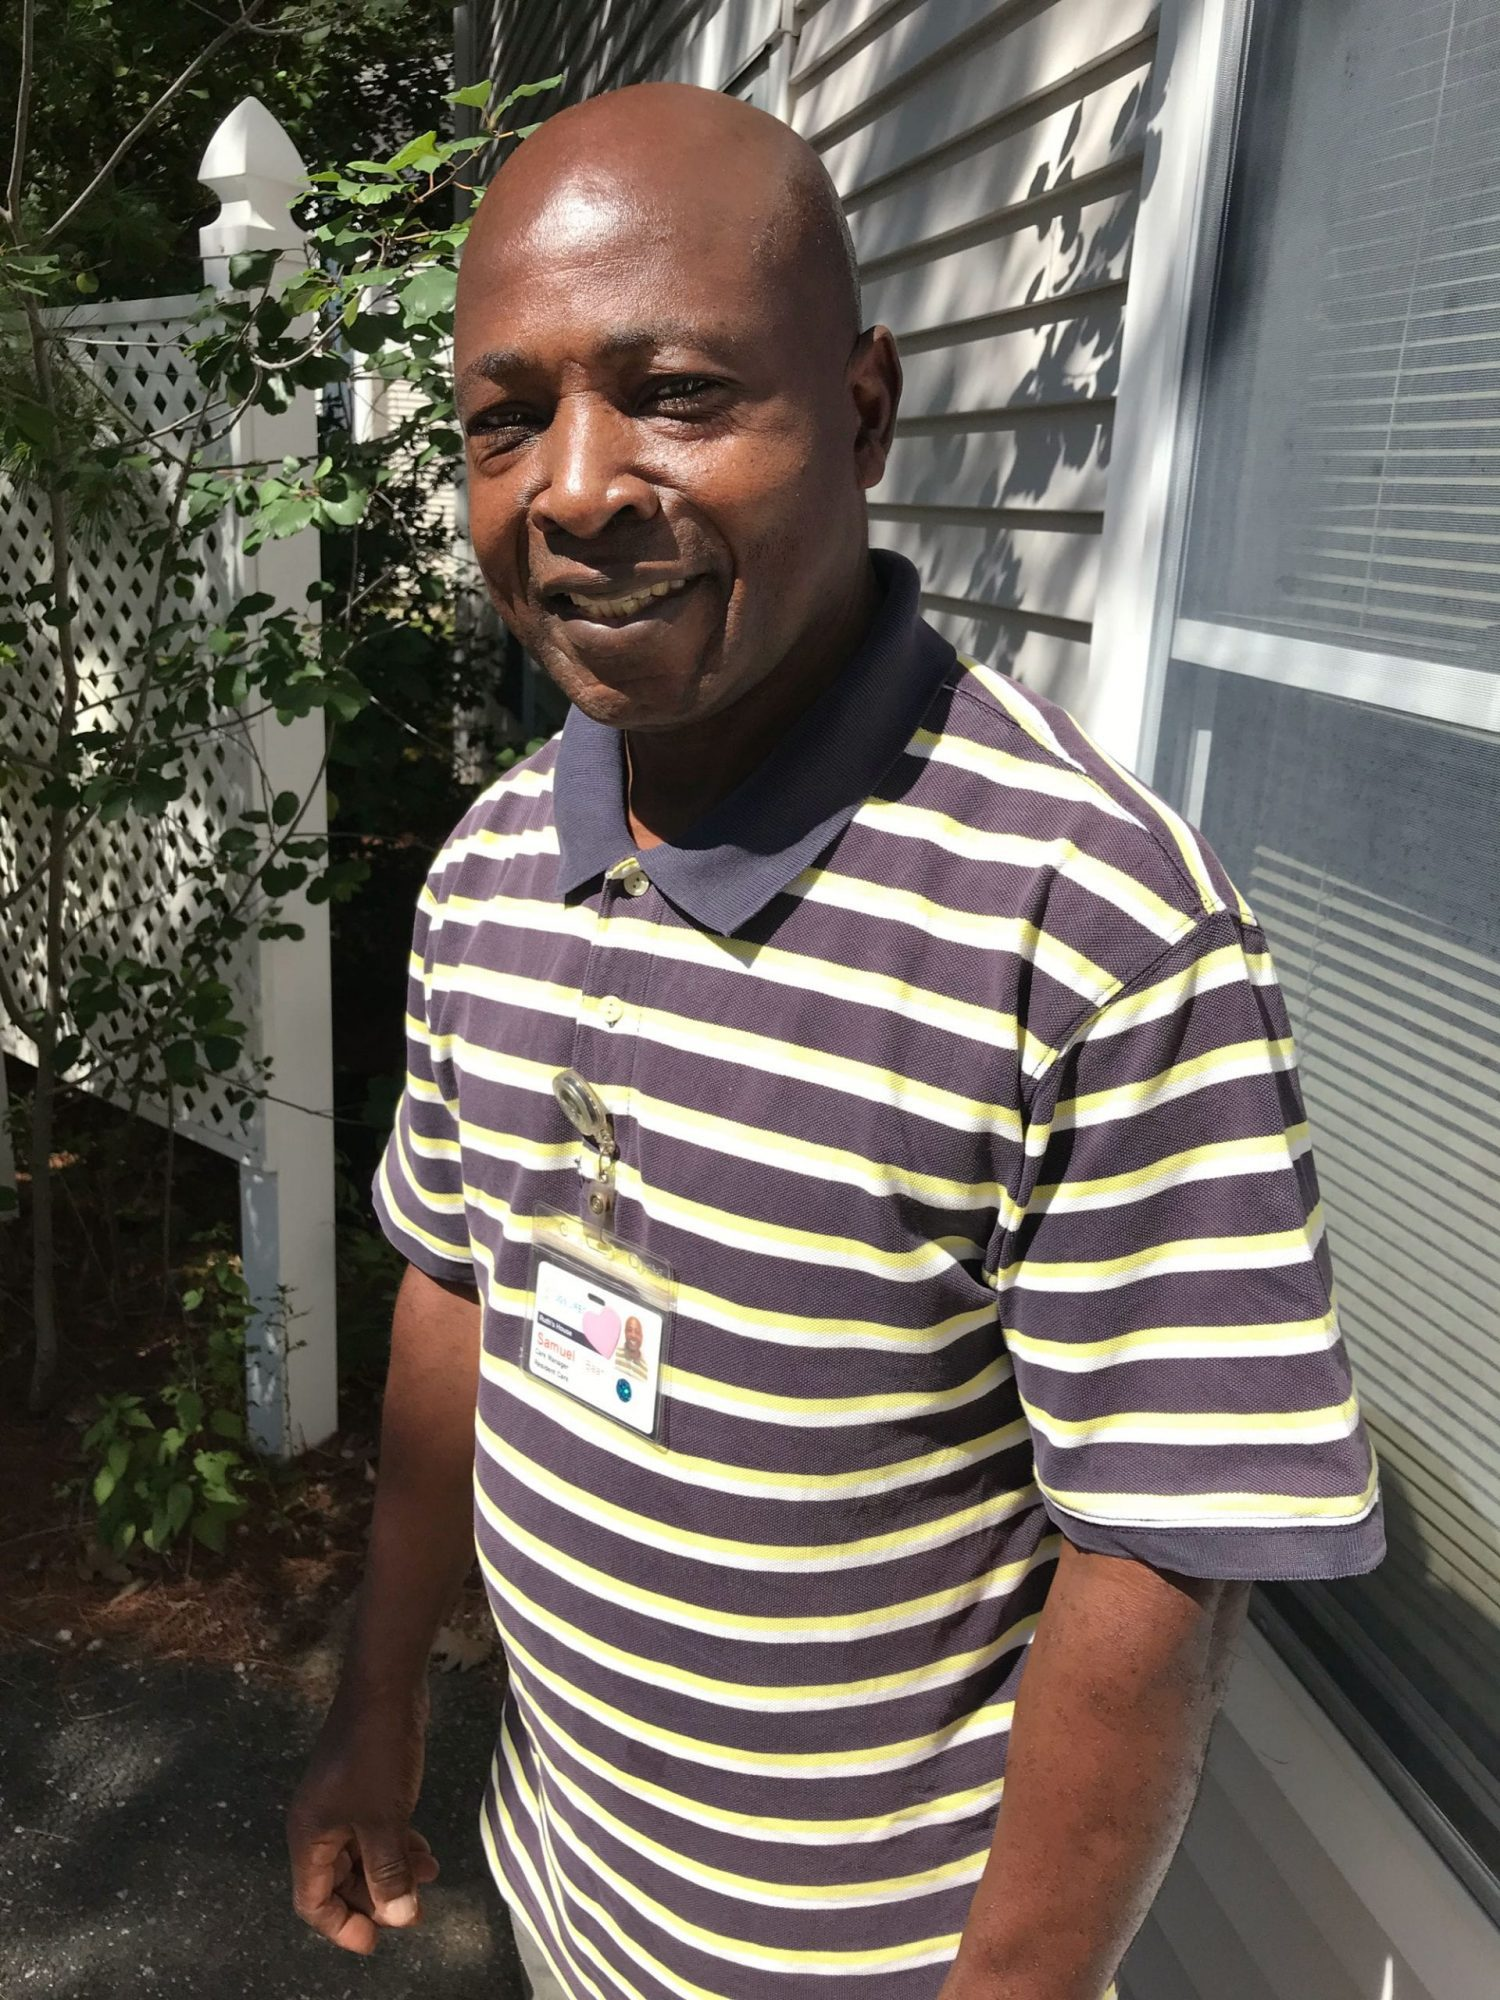 Sam Baah, Care Manager of Ruth's House Assisted Living